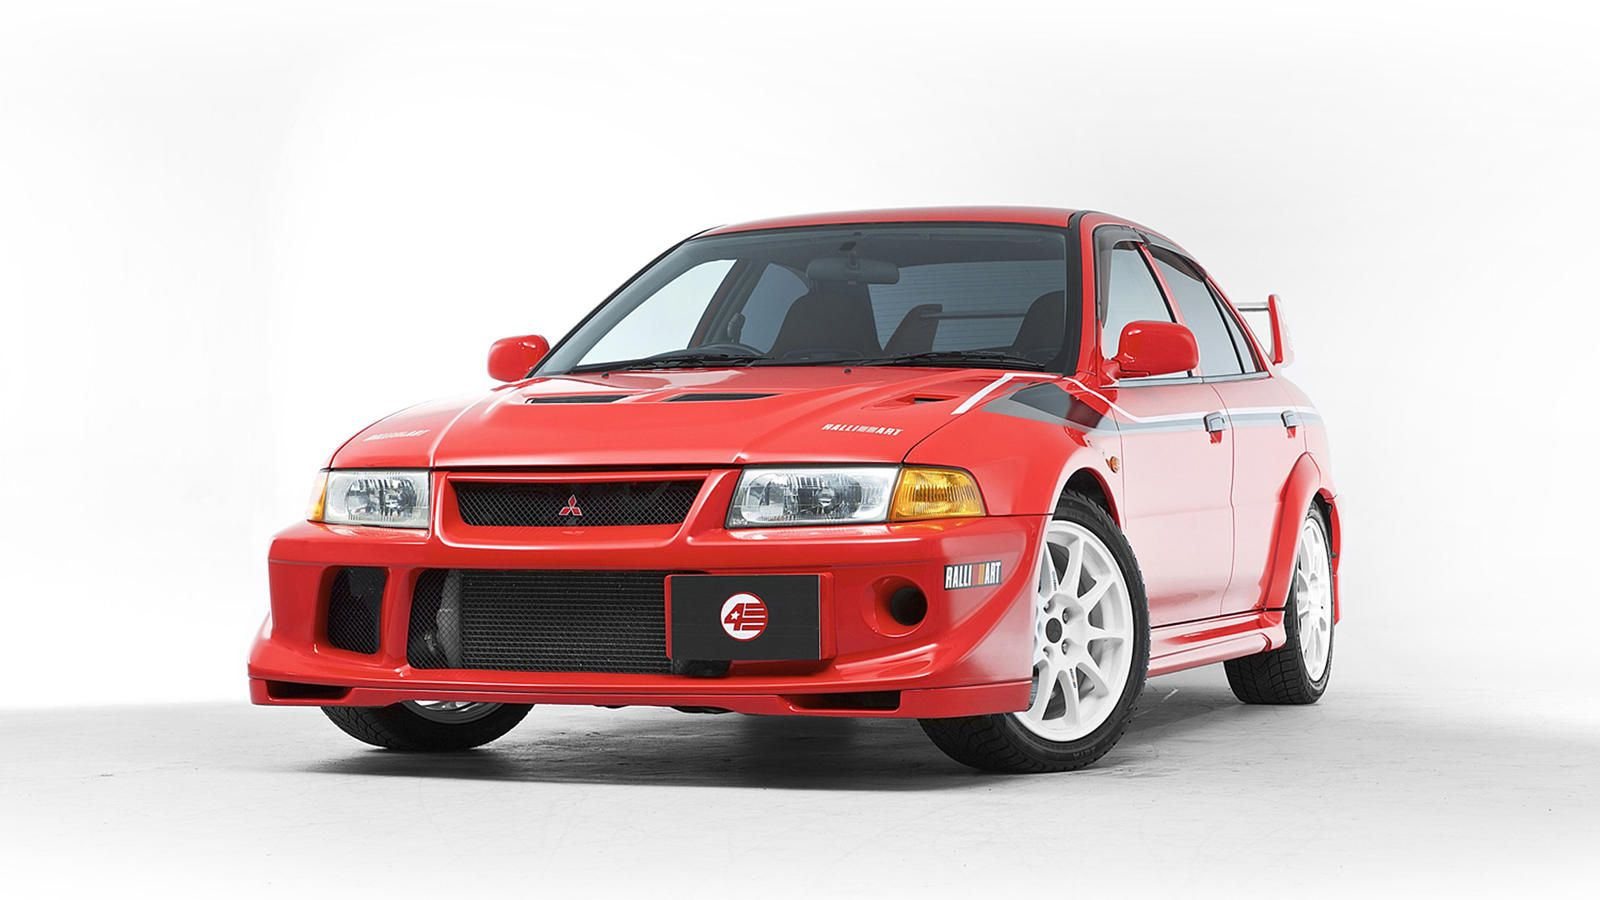 Greatest Mitsubishi Cars Of All Time Mitsubishi Might Be On The Ropes Right Now But This Is Why We Sti In 2021 Mitsubishi Cars Mitsubishi Mitsubishi Lancer Evolution